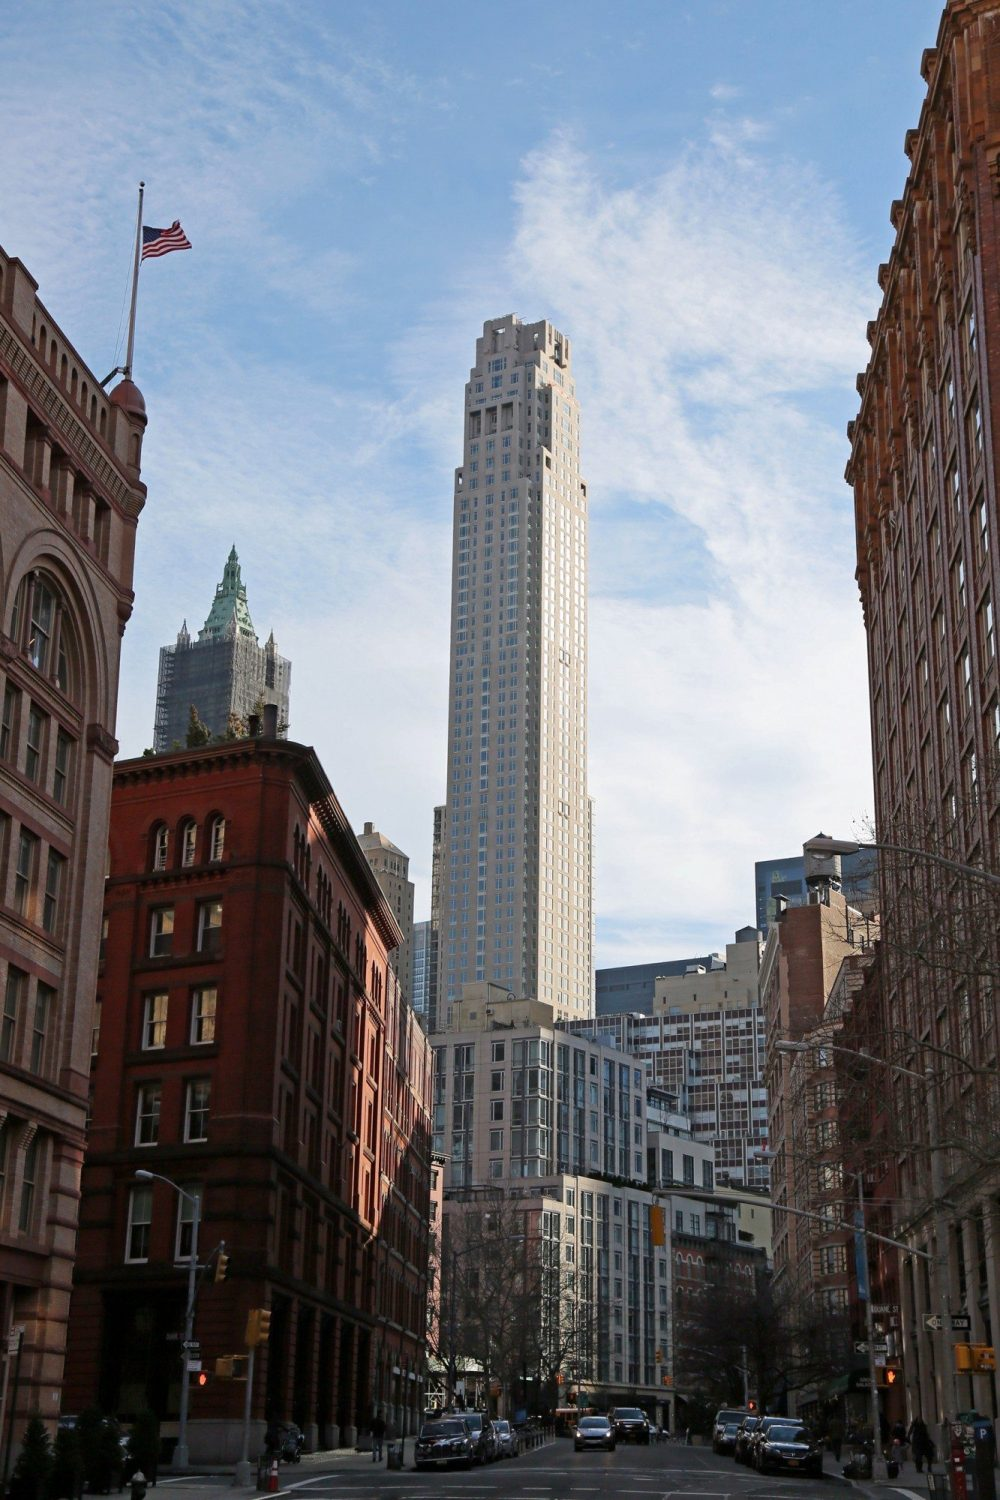 30 Park Place, As Designed By Robert A.M. Stern Architects, Celebrates New Milestones